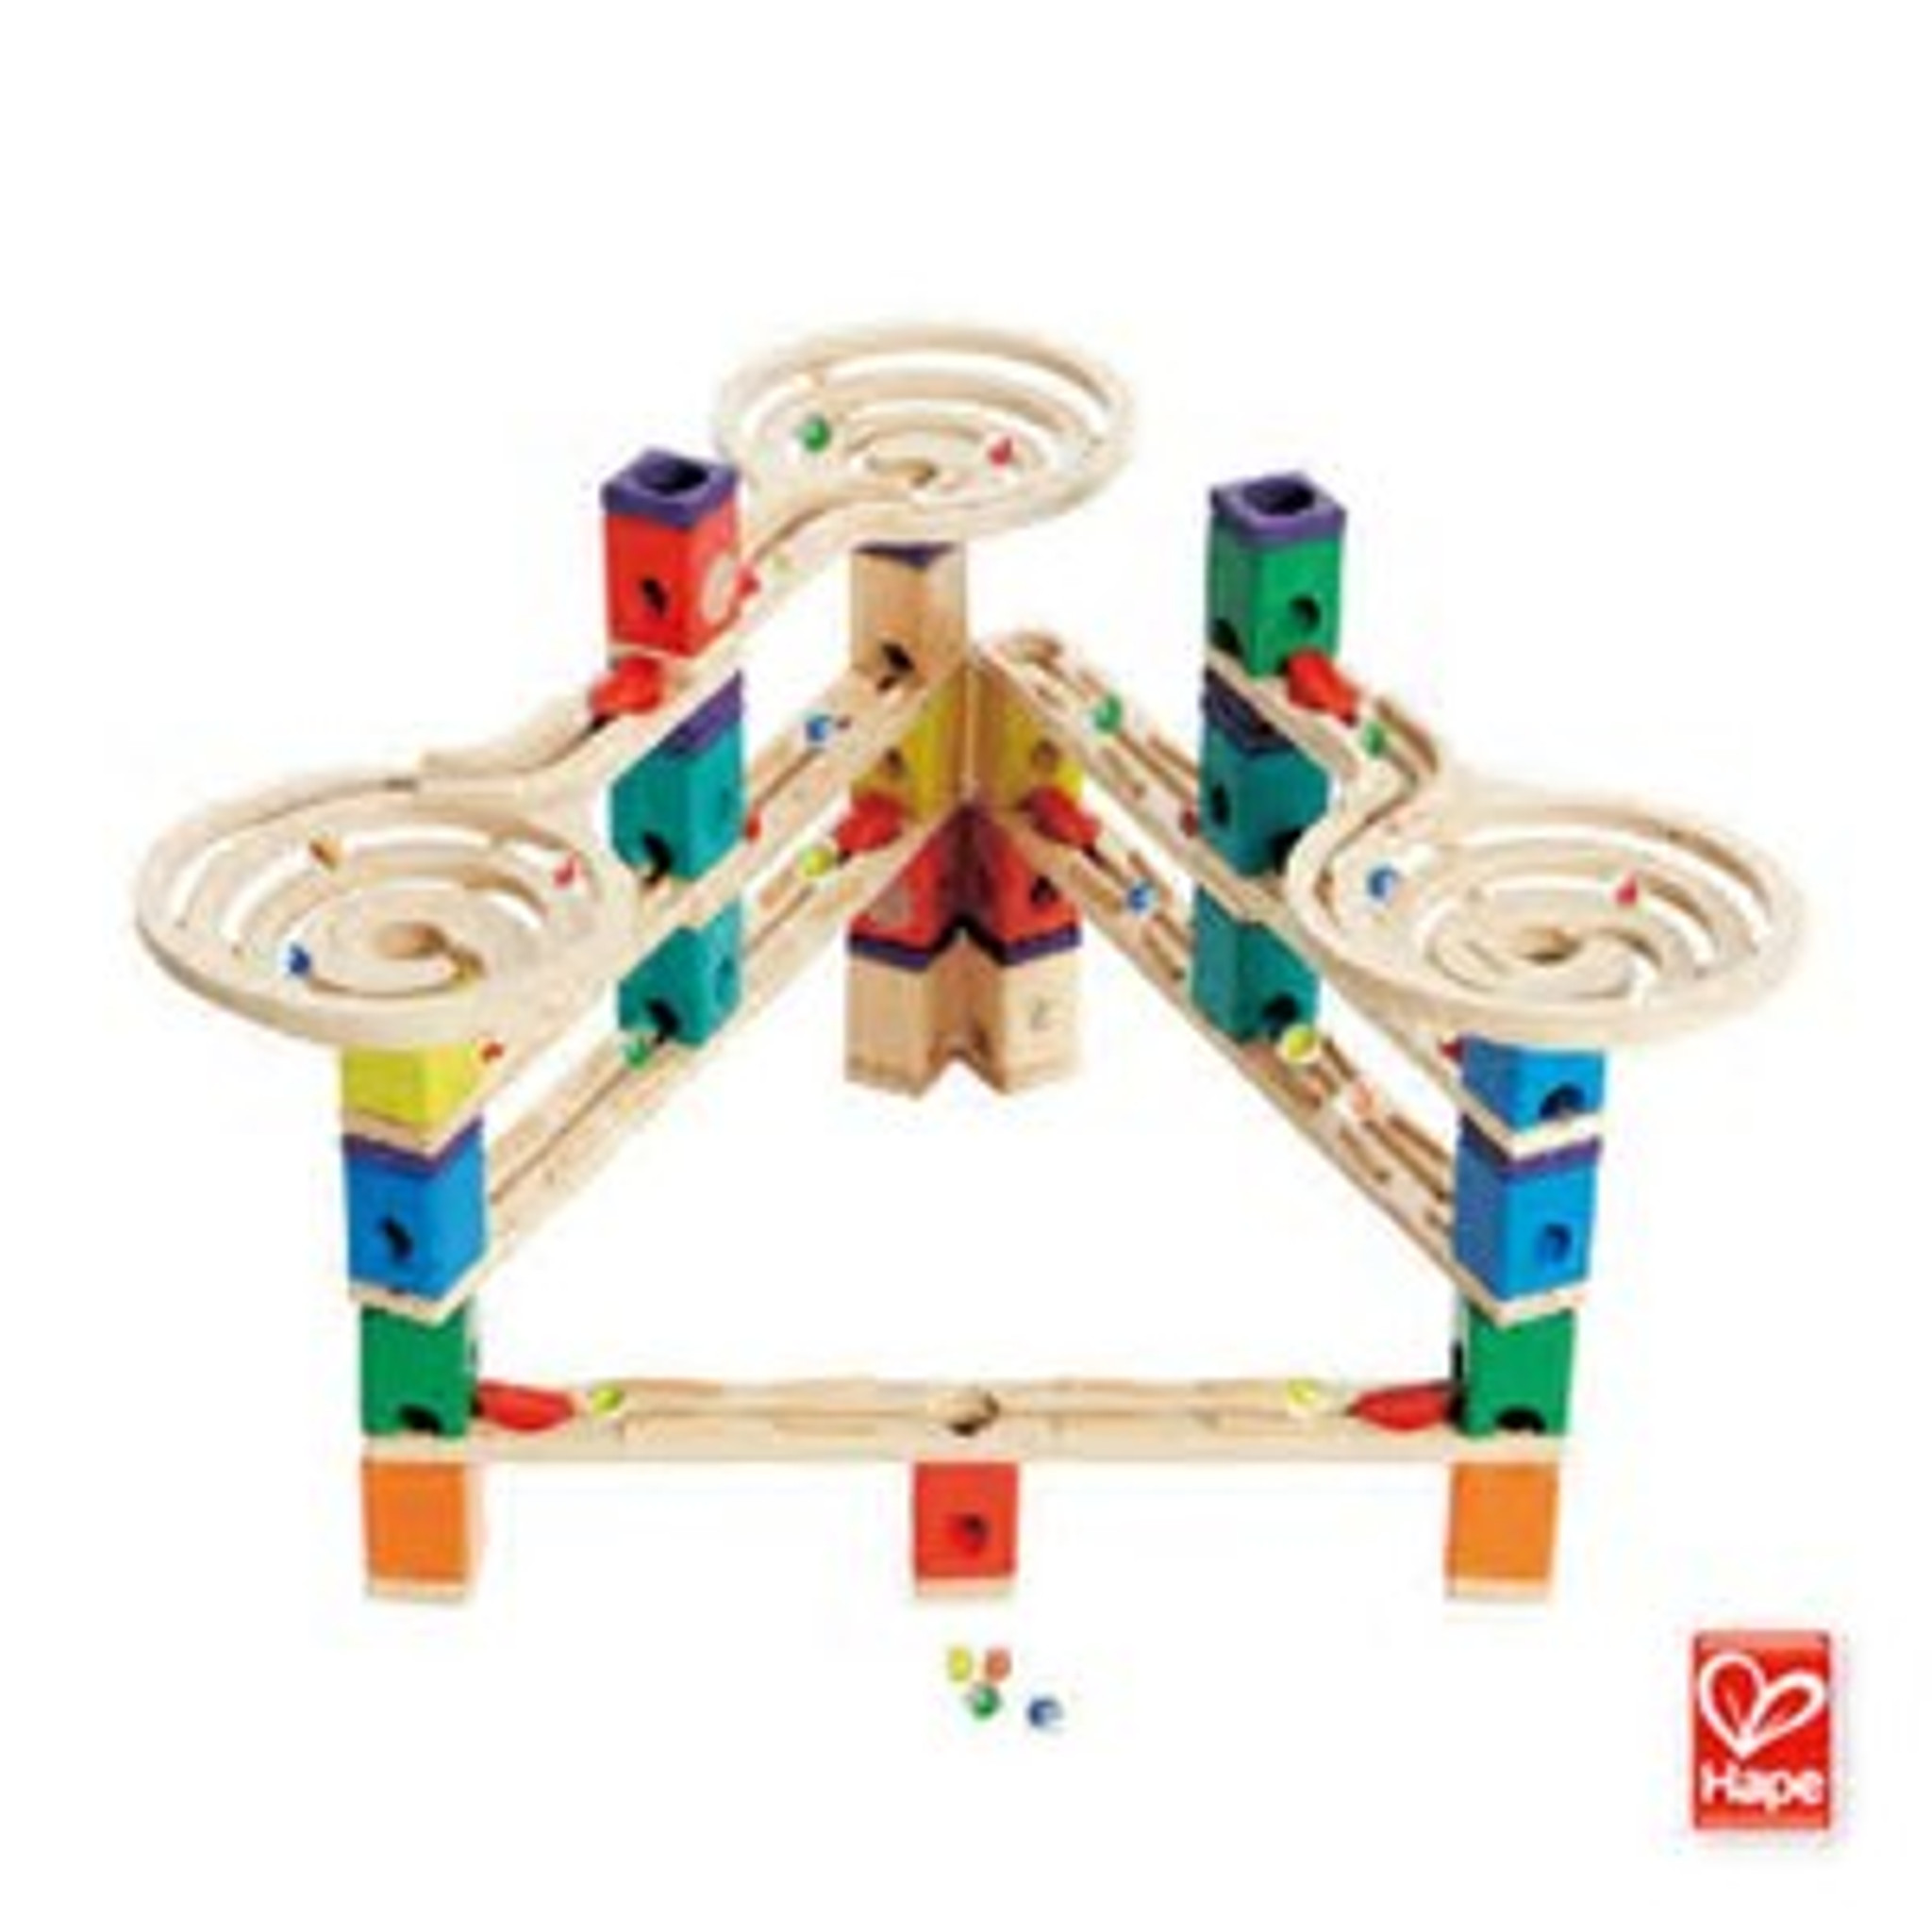 This is another construction from the same kit